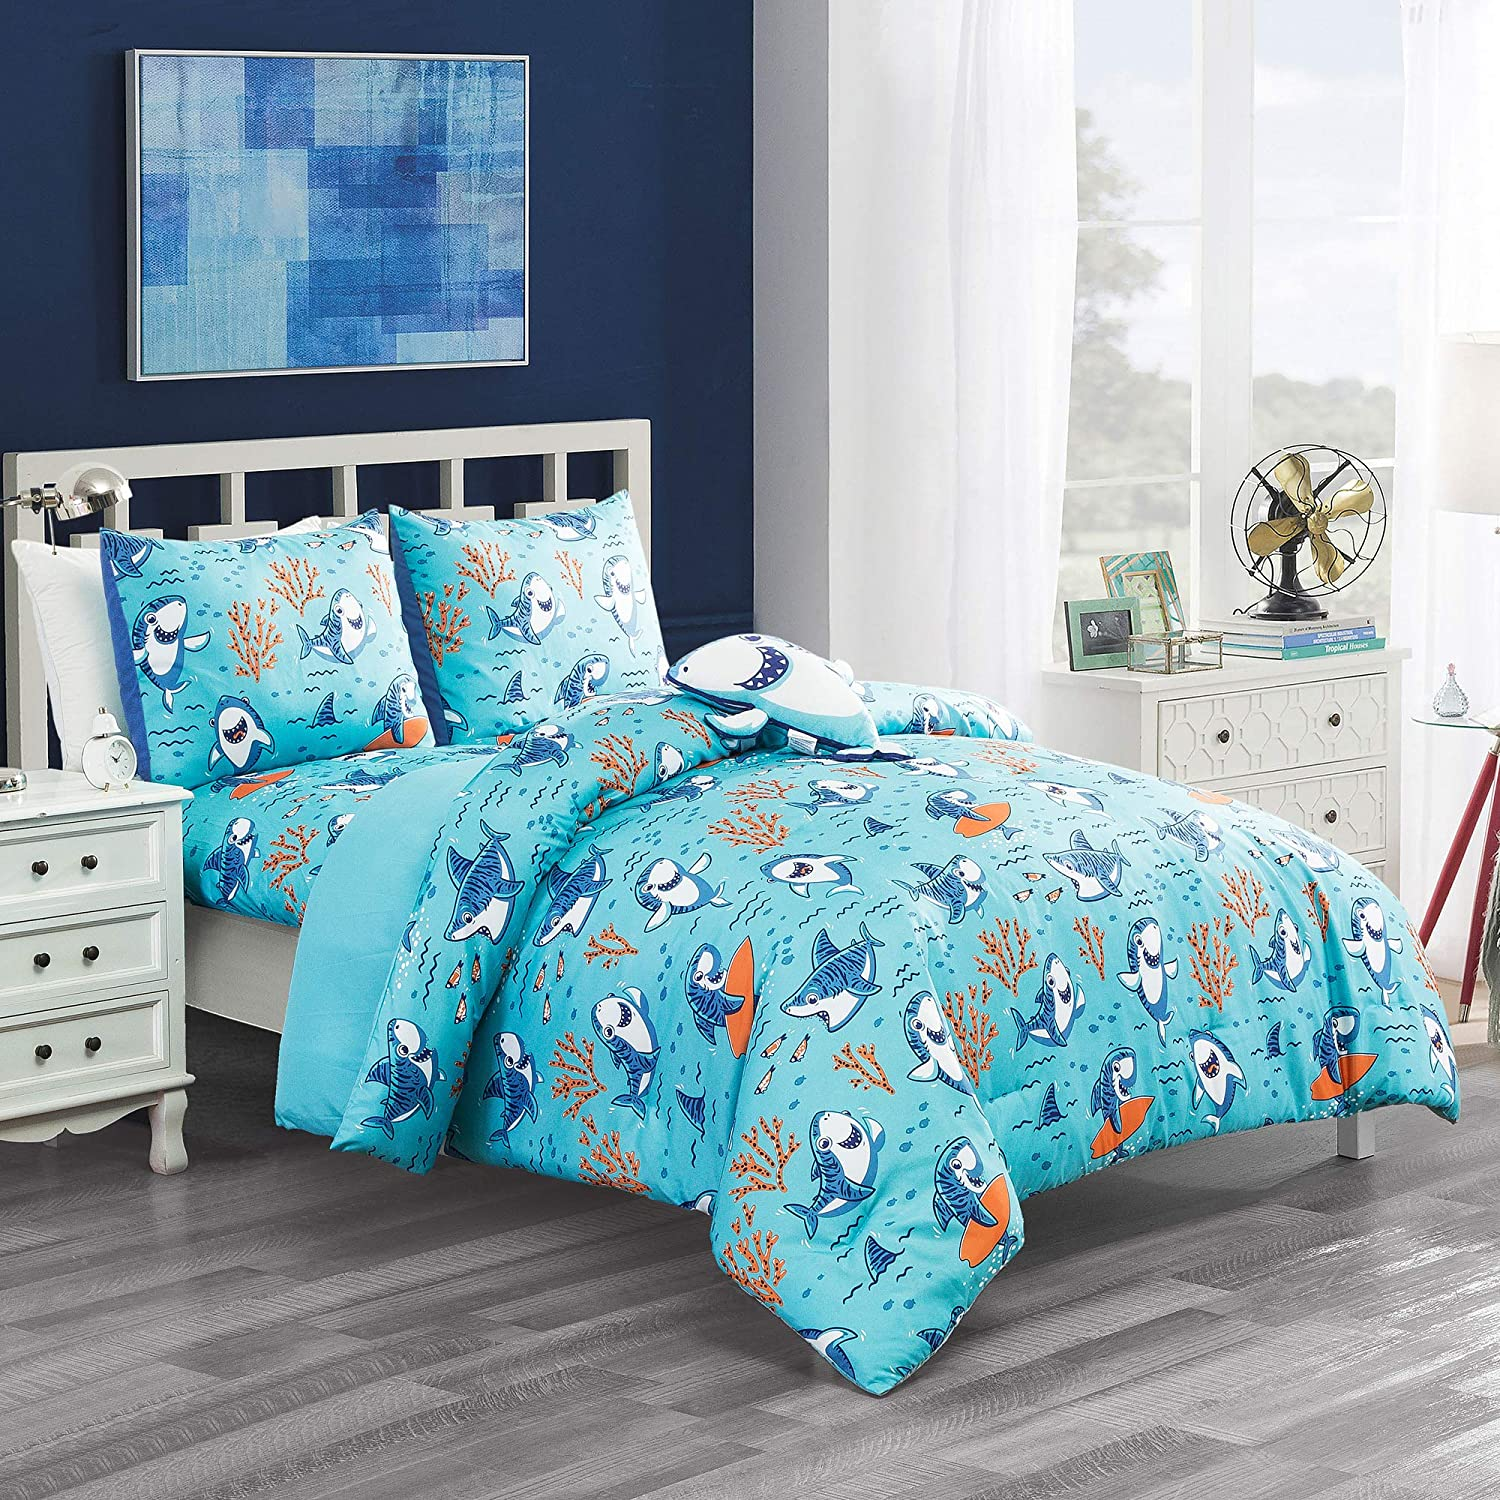 WPM Kids Collection Bedding 5 Piece Blueprint full size ...